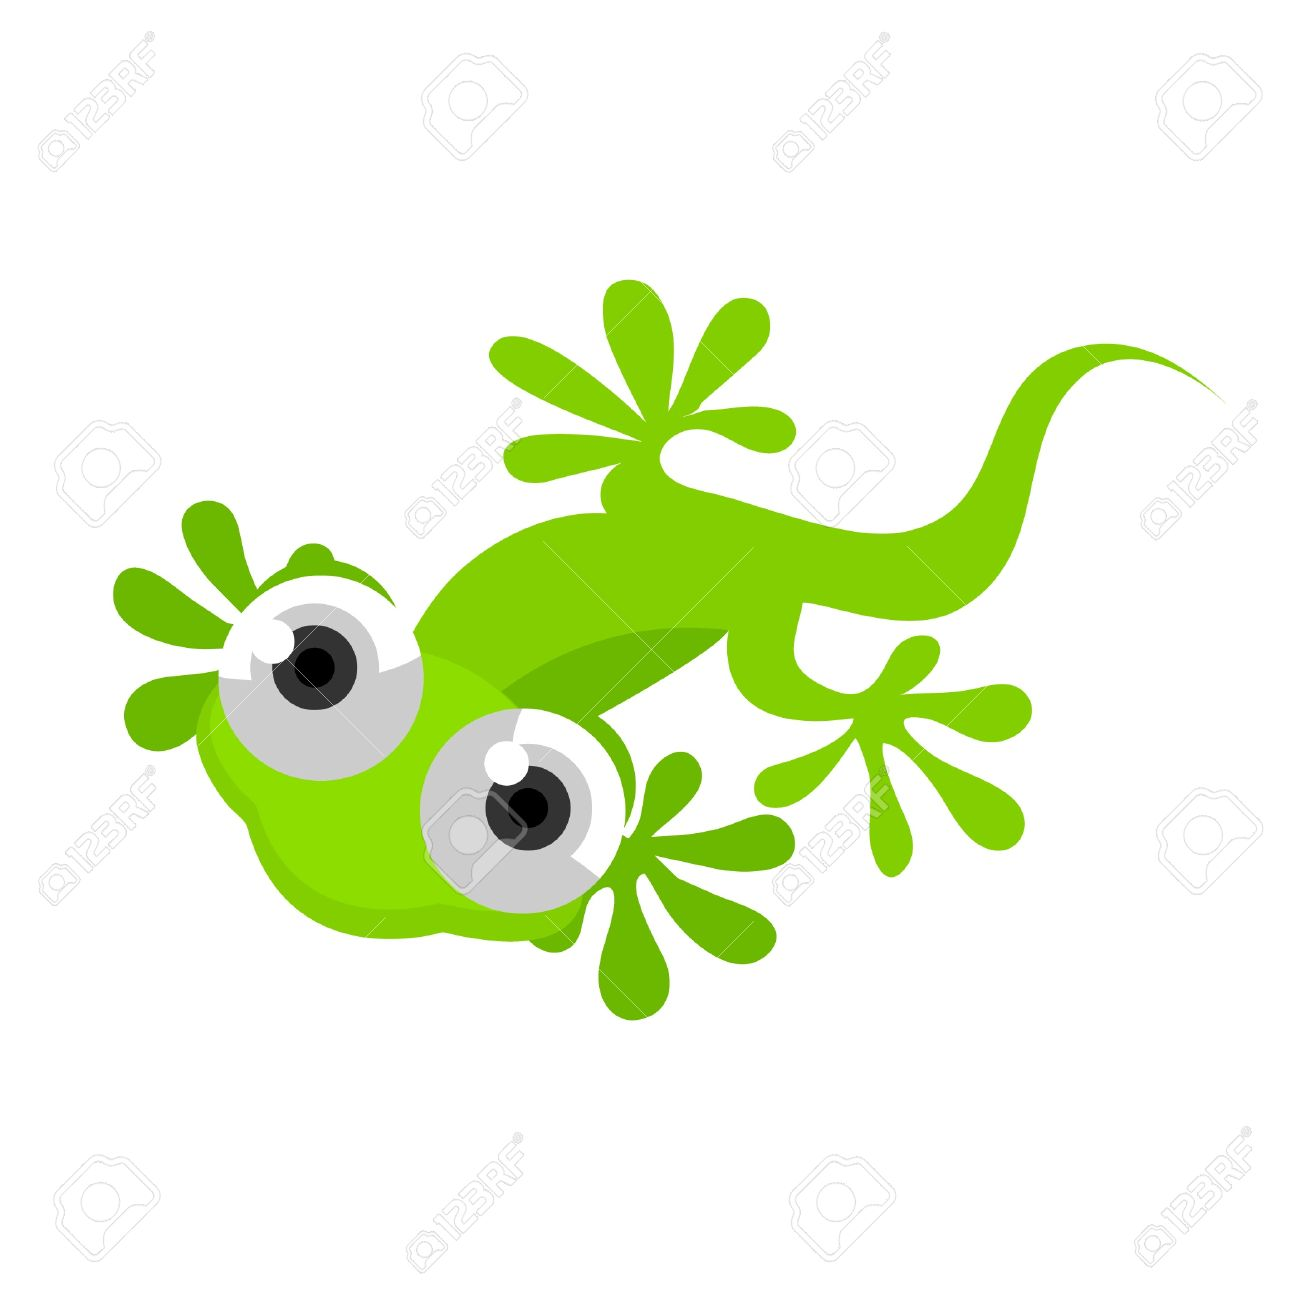 19,037 Gecko Stock Vector Illustration And Royalty Free Gecko Clipart.